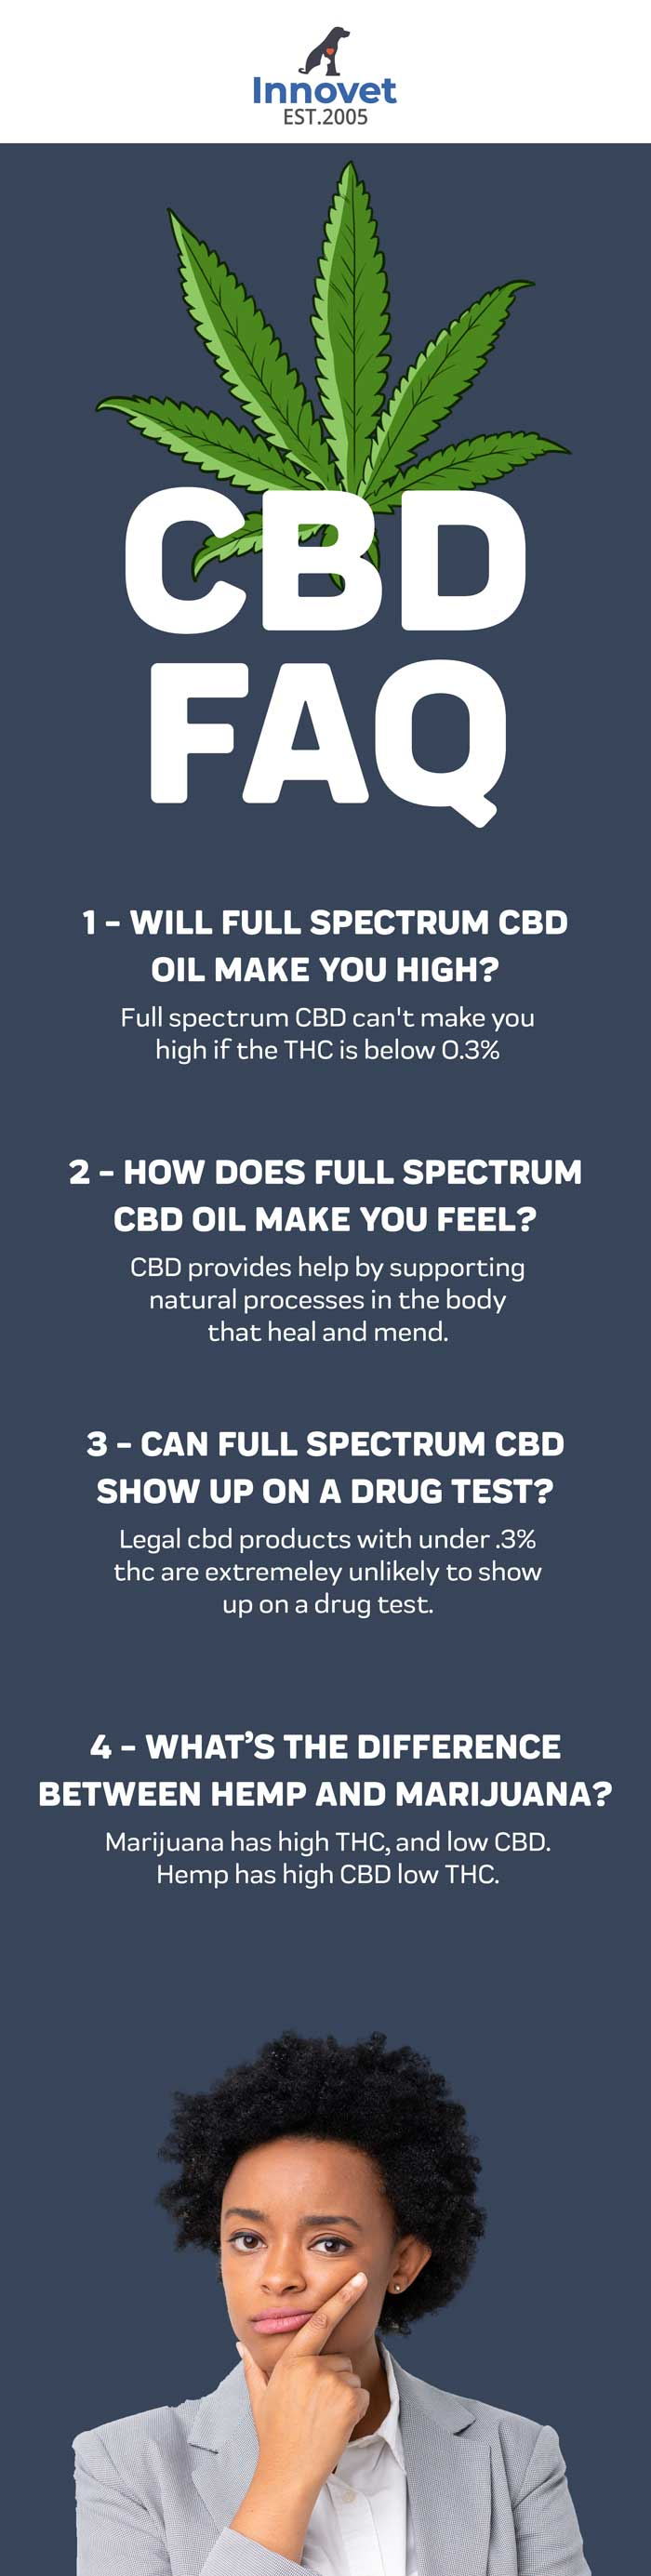 The main questions and concerns about CBD